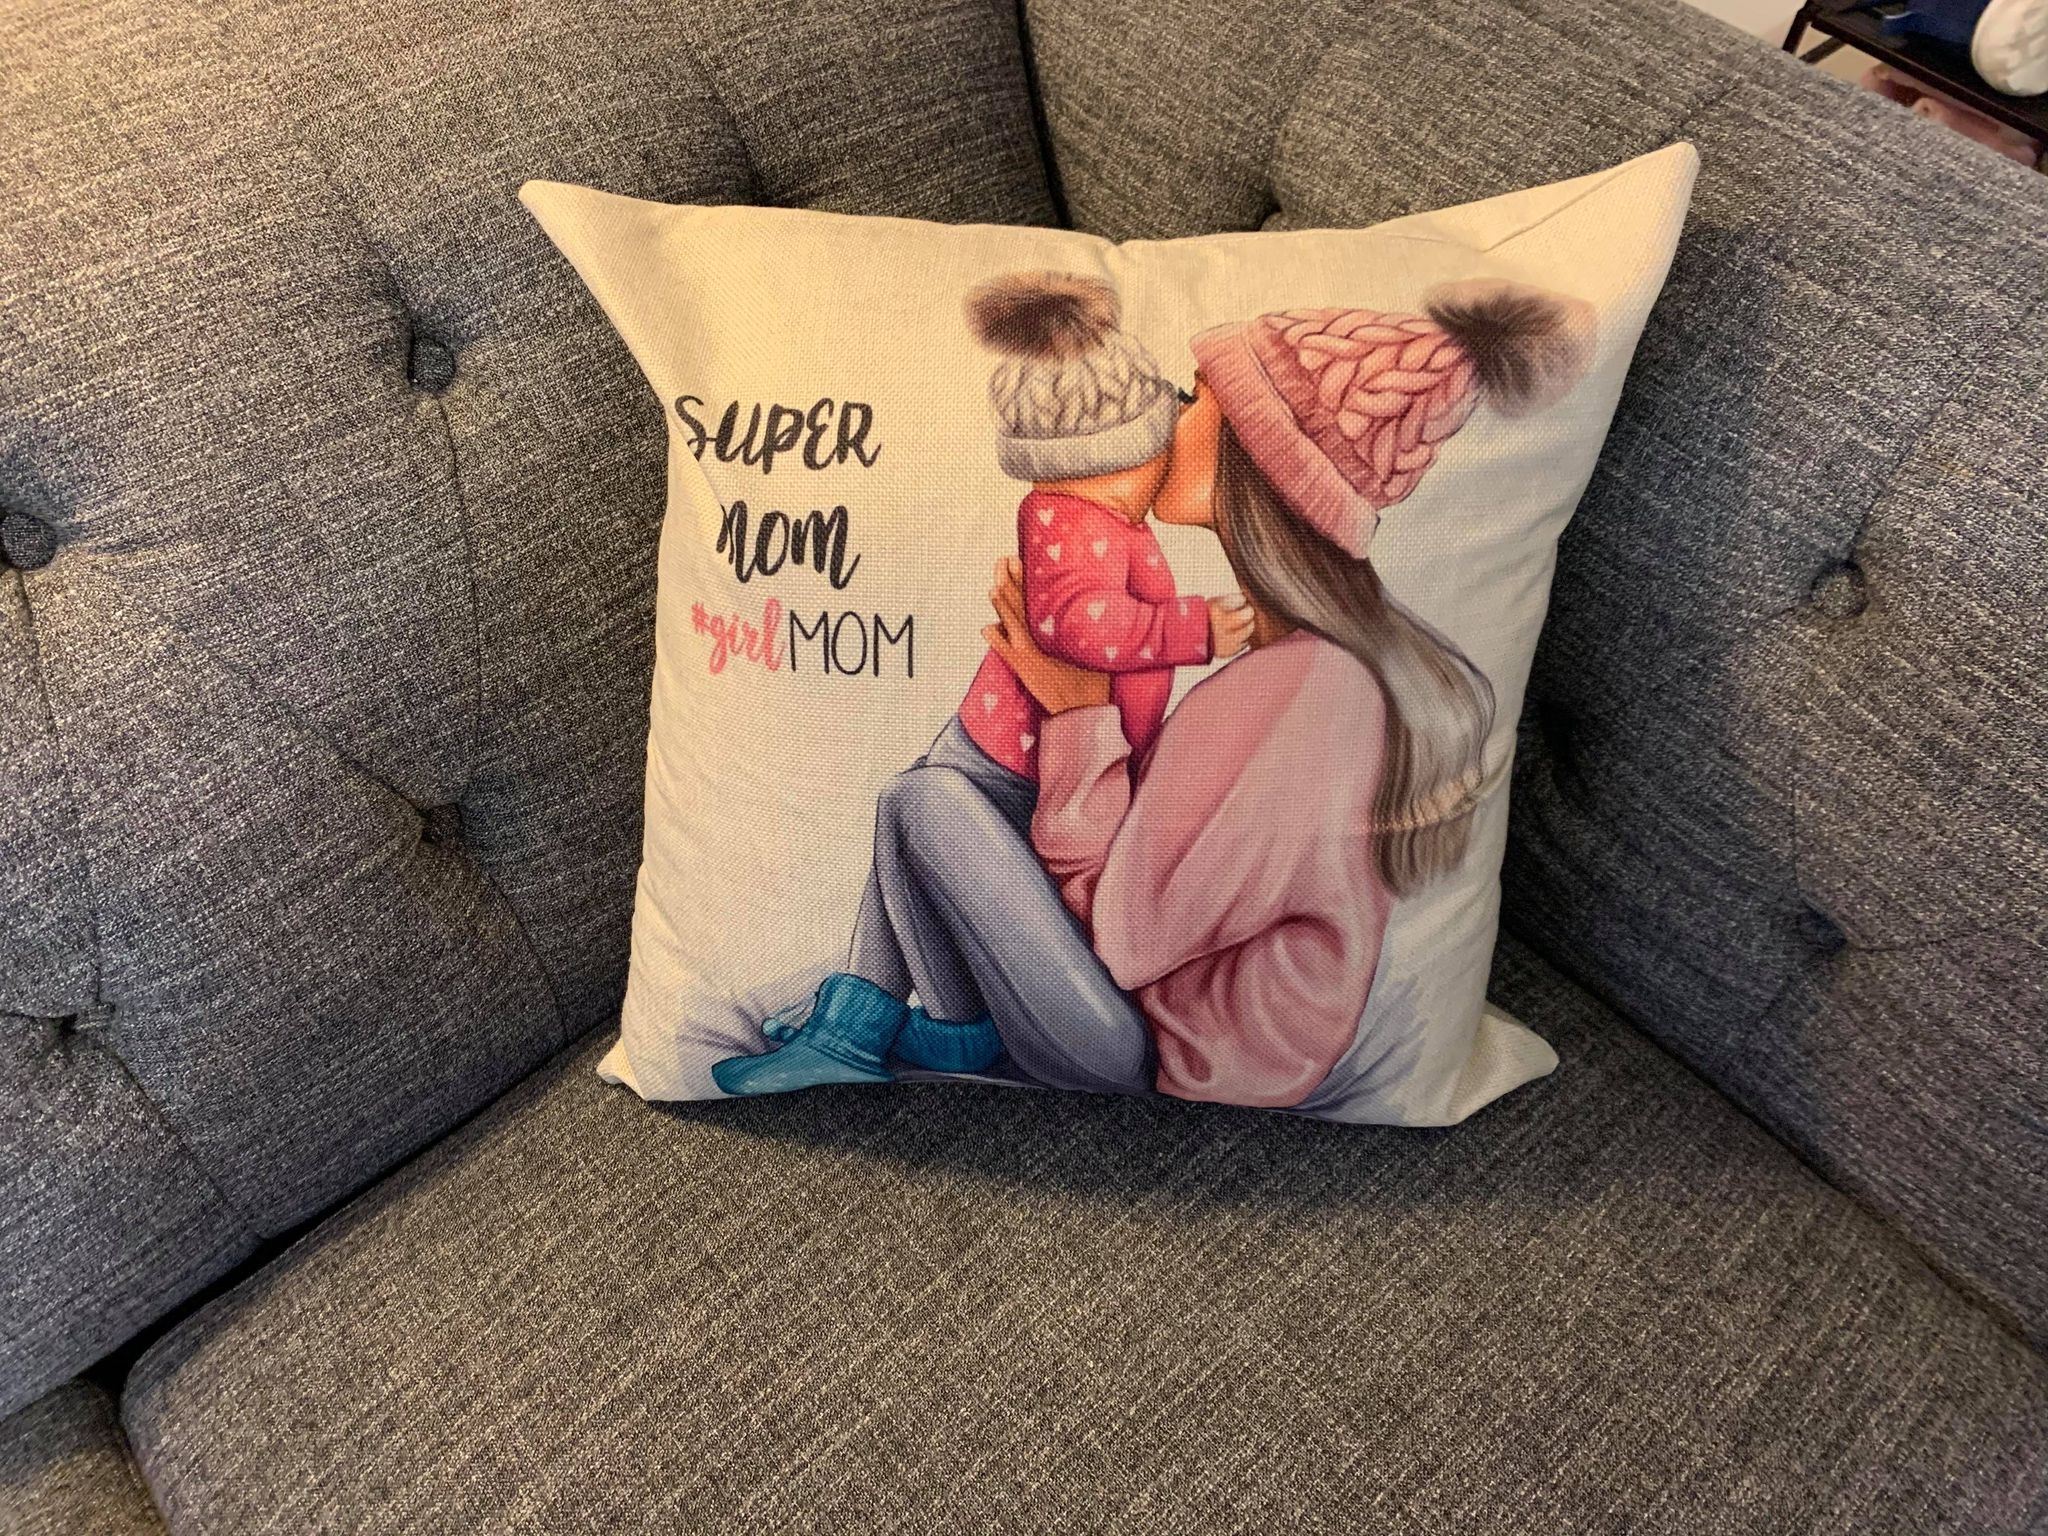 Super Mom #girlmom  pillowcase